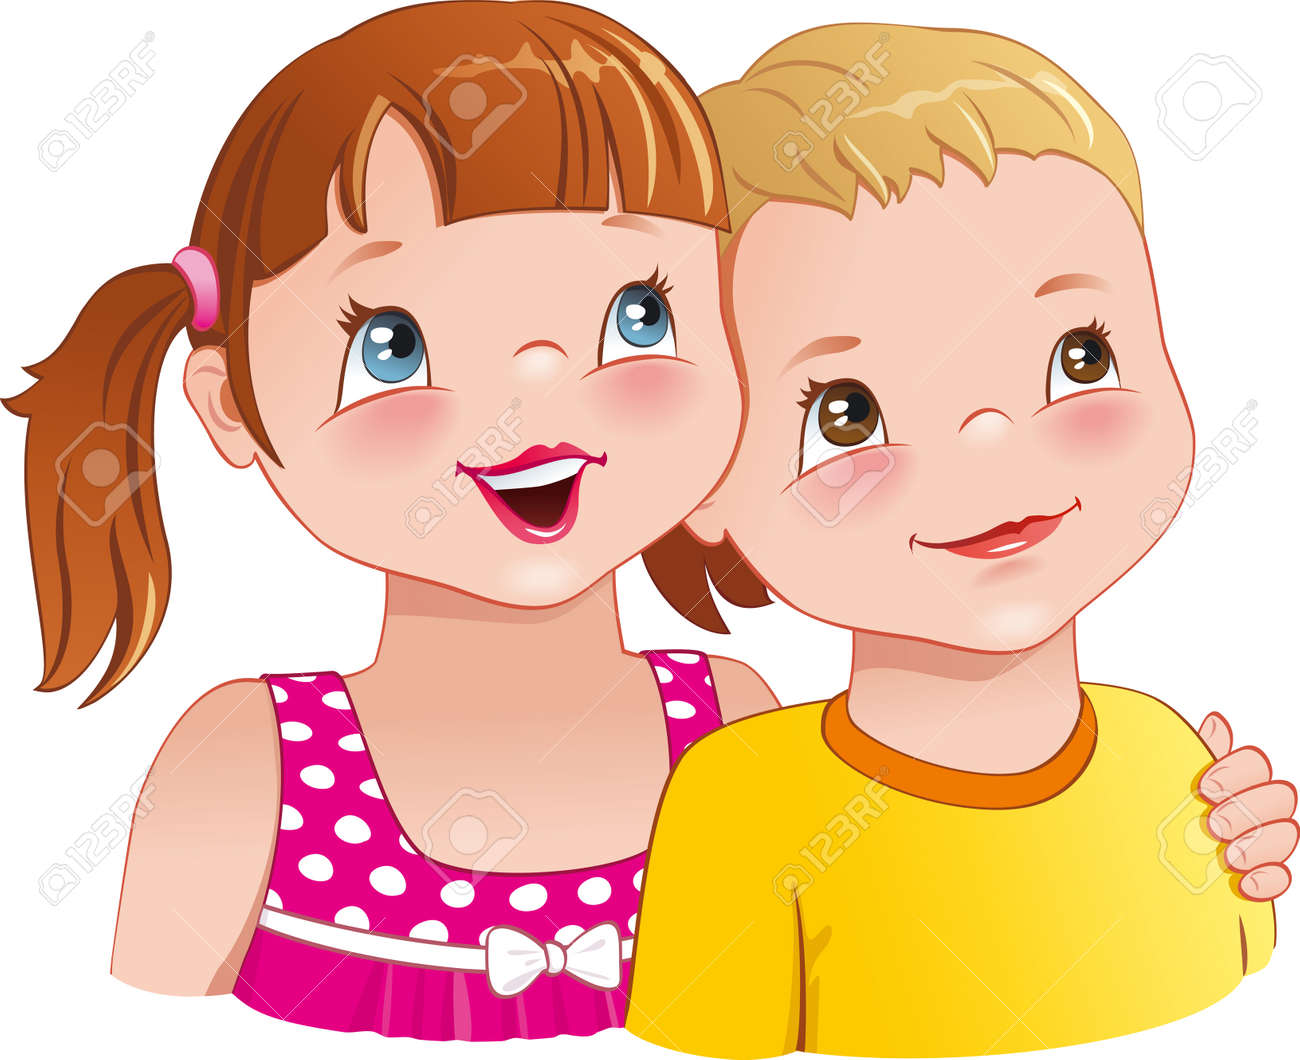 Little girl hugging a boy - cute kids looking up and smiling happily - 30852211